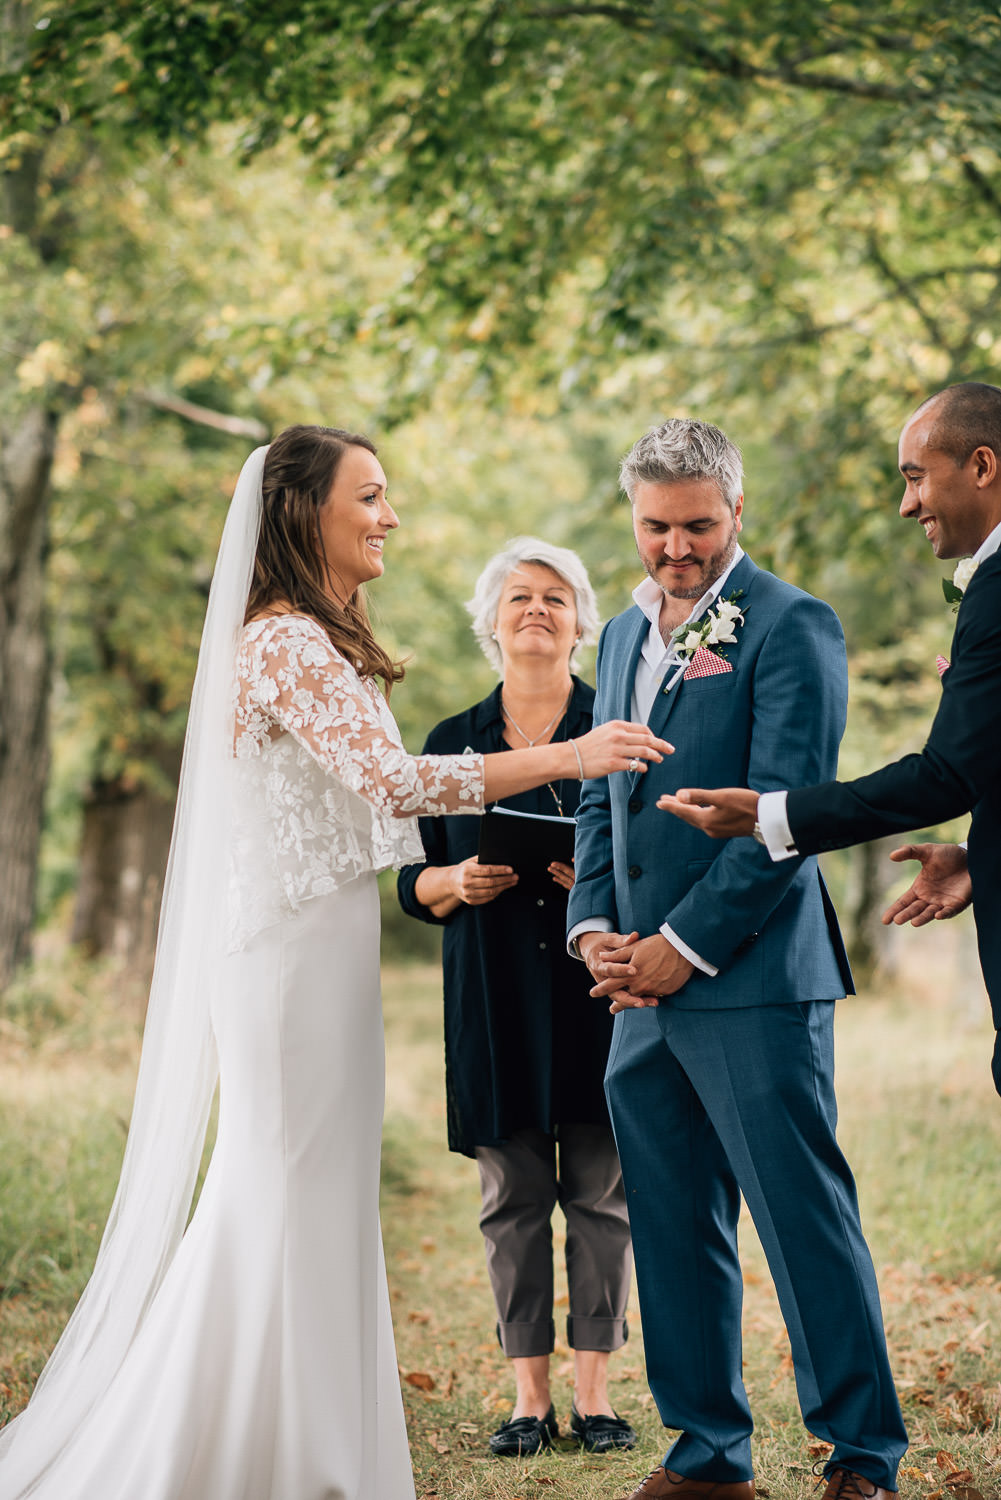 Humanist celebrant in chateau de la bourlie wedding by destination wedding photographer the shannons photography